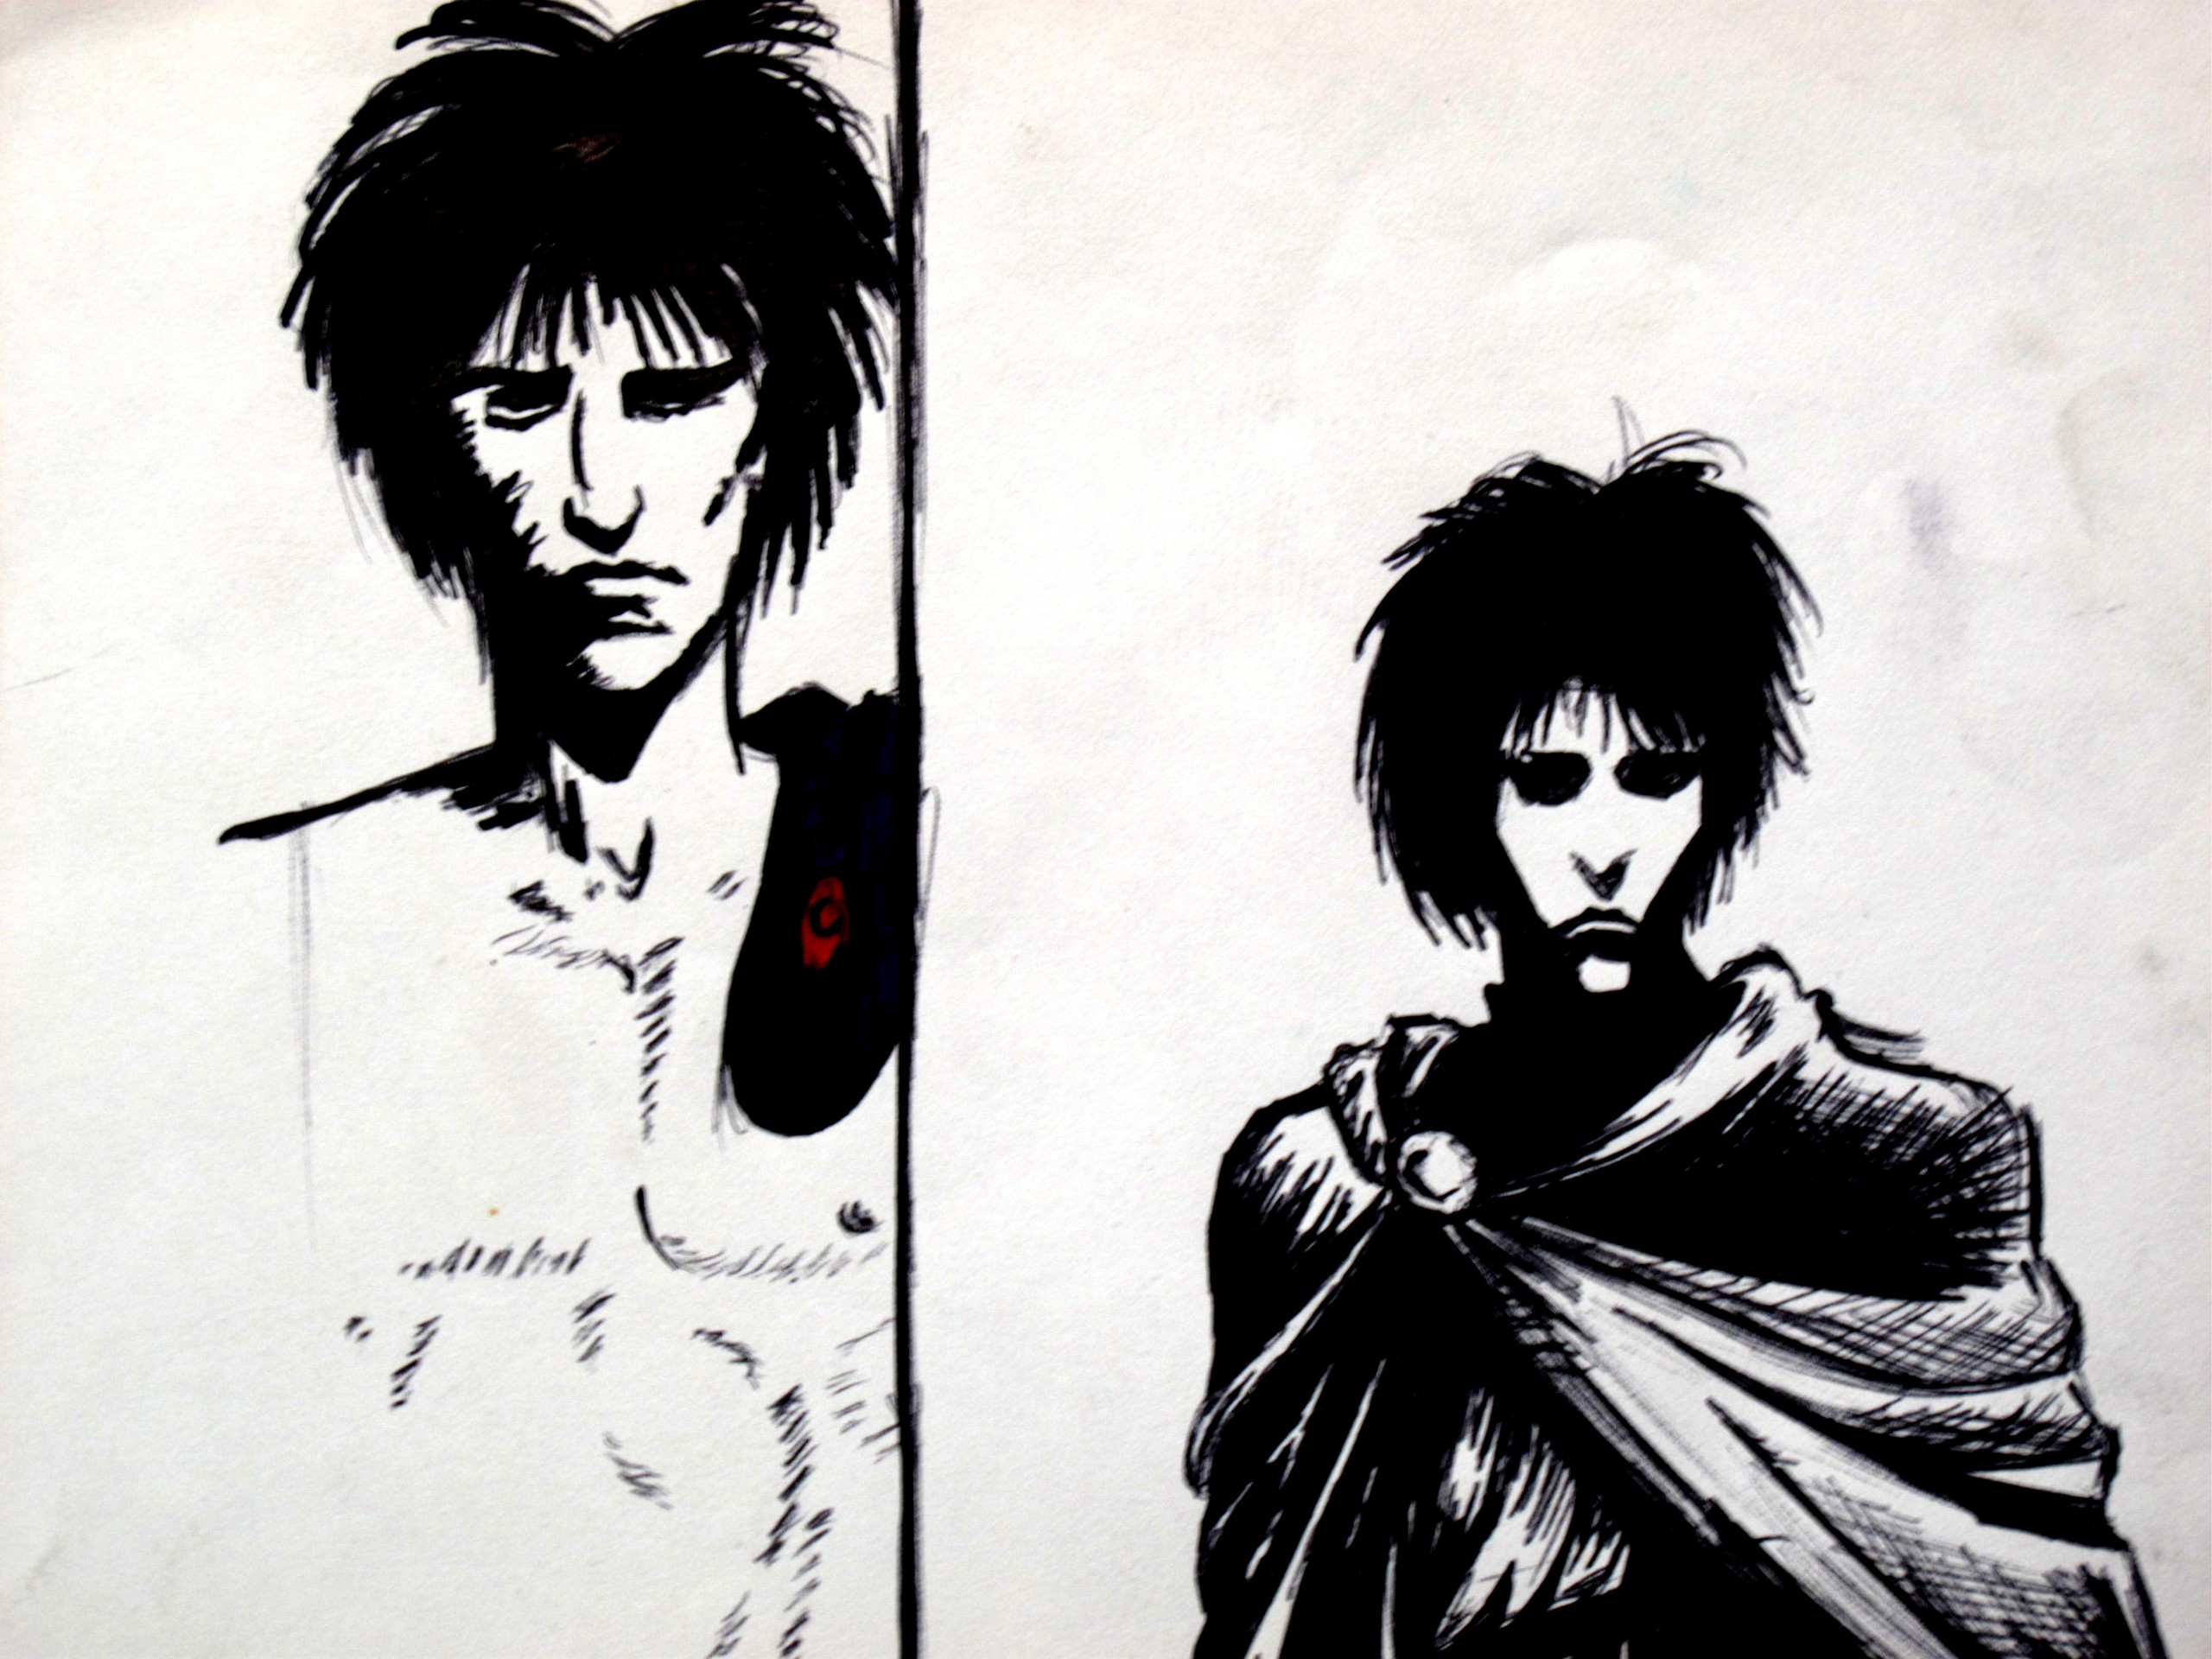 the story of sandman and the dreaming mind enkidu Dream of the endless (morpheus) was the anthropomorphic personification of the concept of dreaming he dwelled within a realm called the dreaming, from where he controlled the aspects of fantasy and reality in the universe he was the protagonist of neil gaiman's landmark vertigo series the sandman.